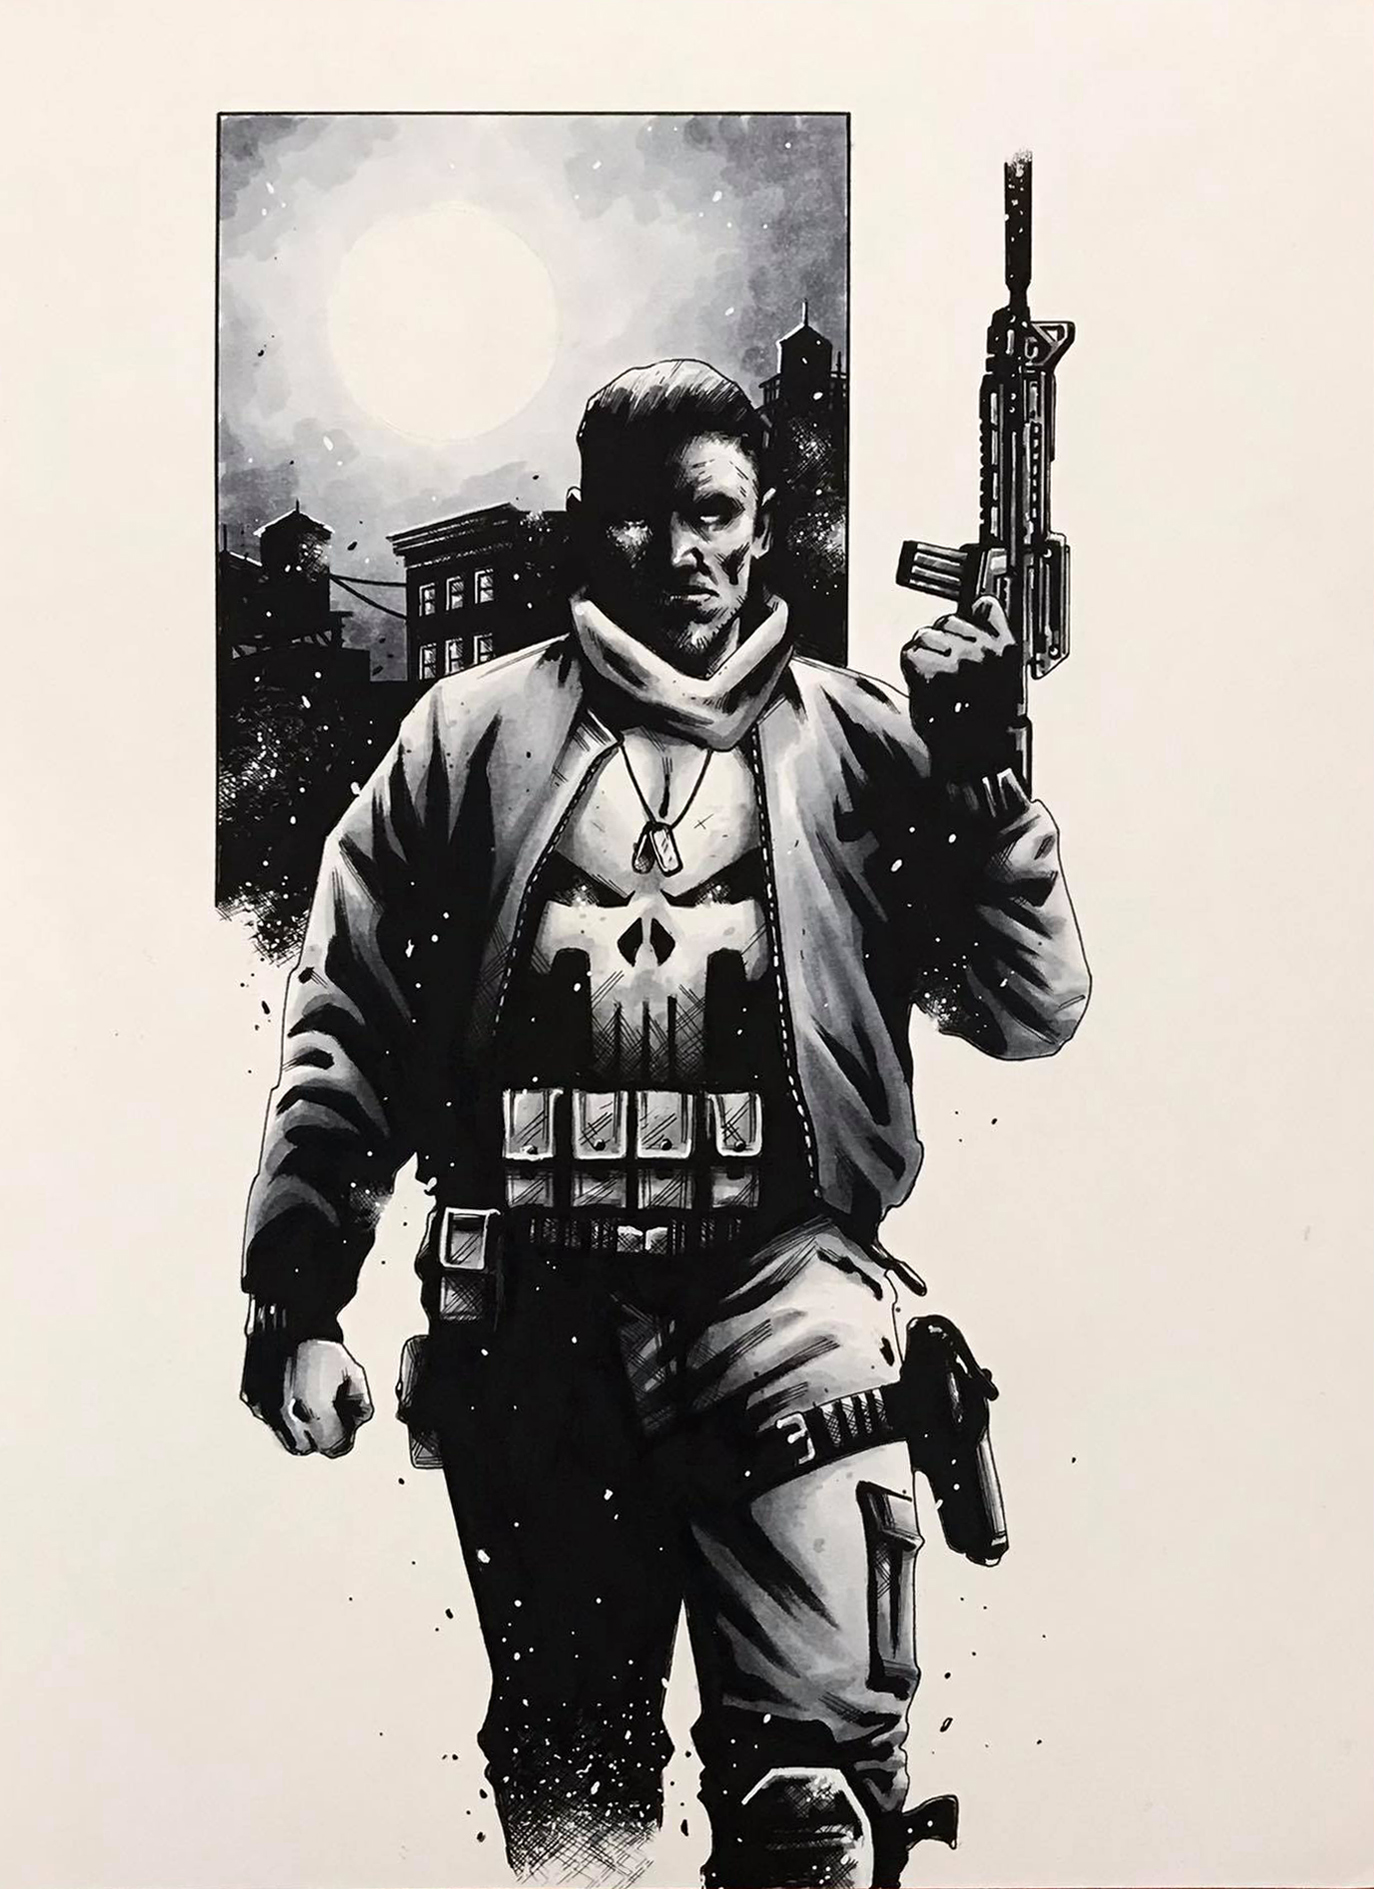 the punisher  Ink + Copic -  A4 - 260 gr Bristol paper - usd 200